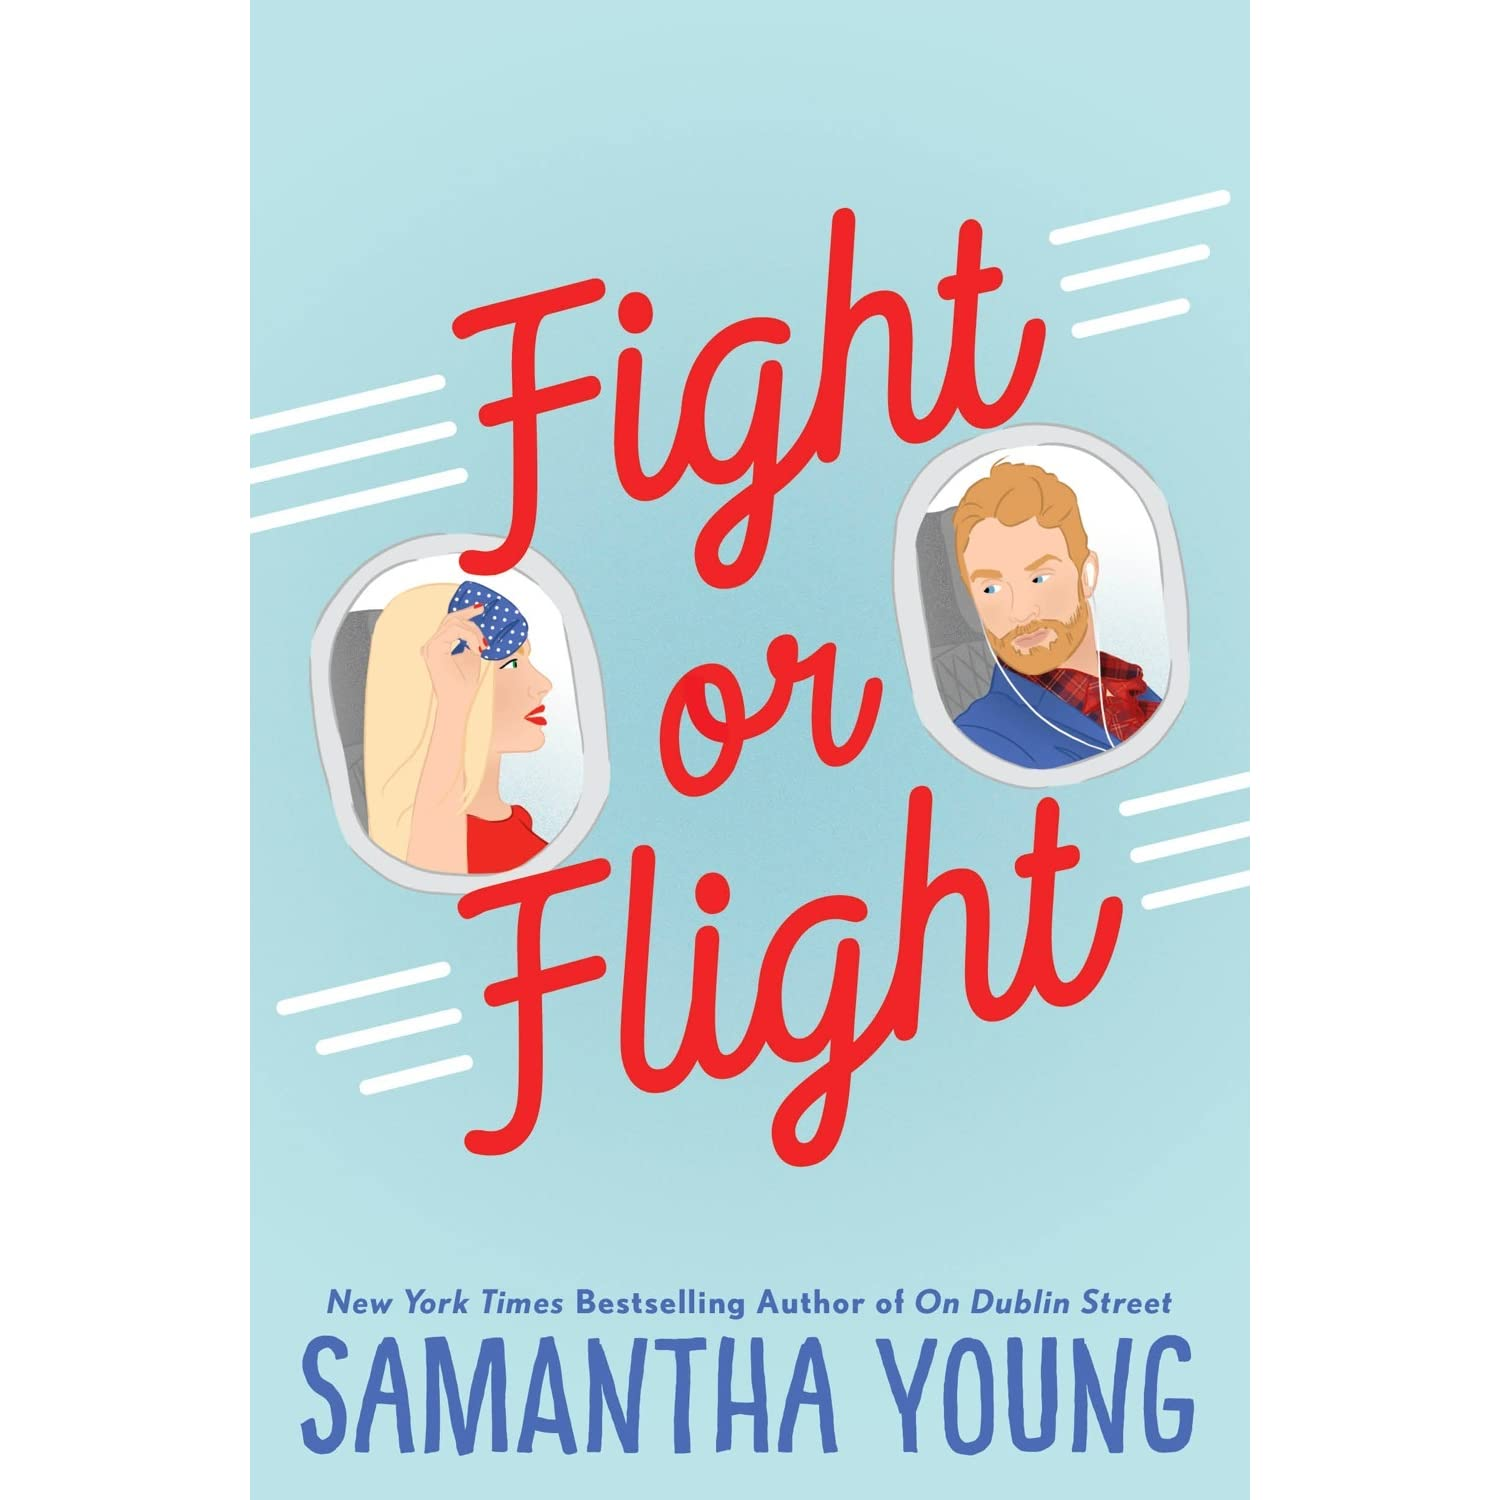 Pavlina Read more sleep less blog❤❤ 's review of Fight or Flight